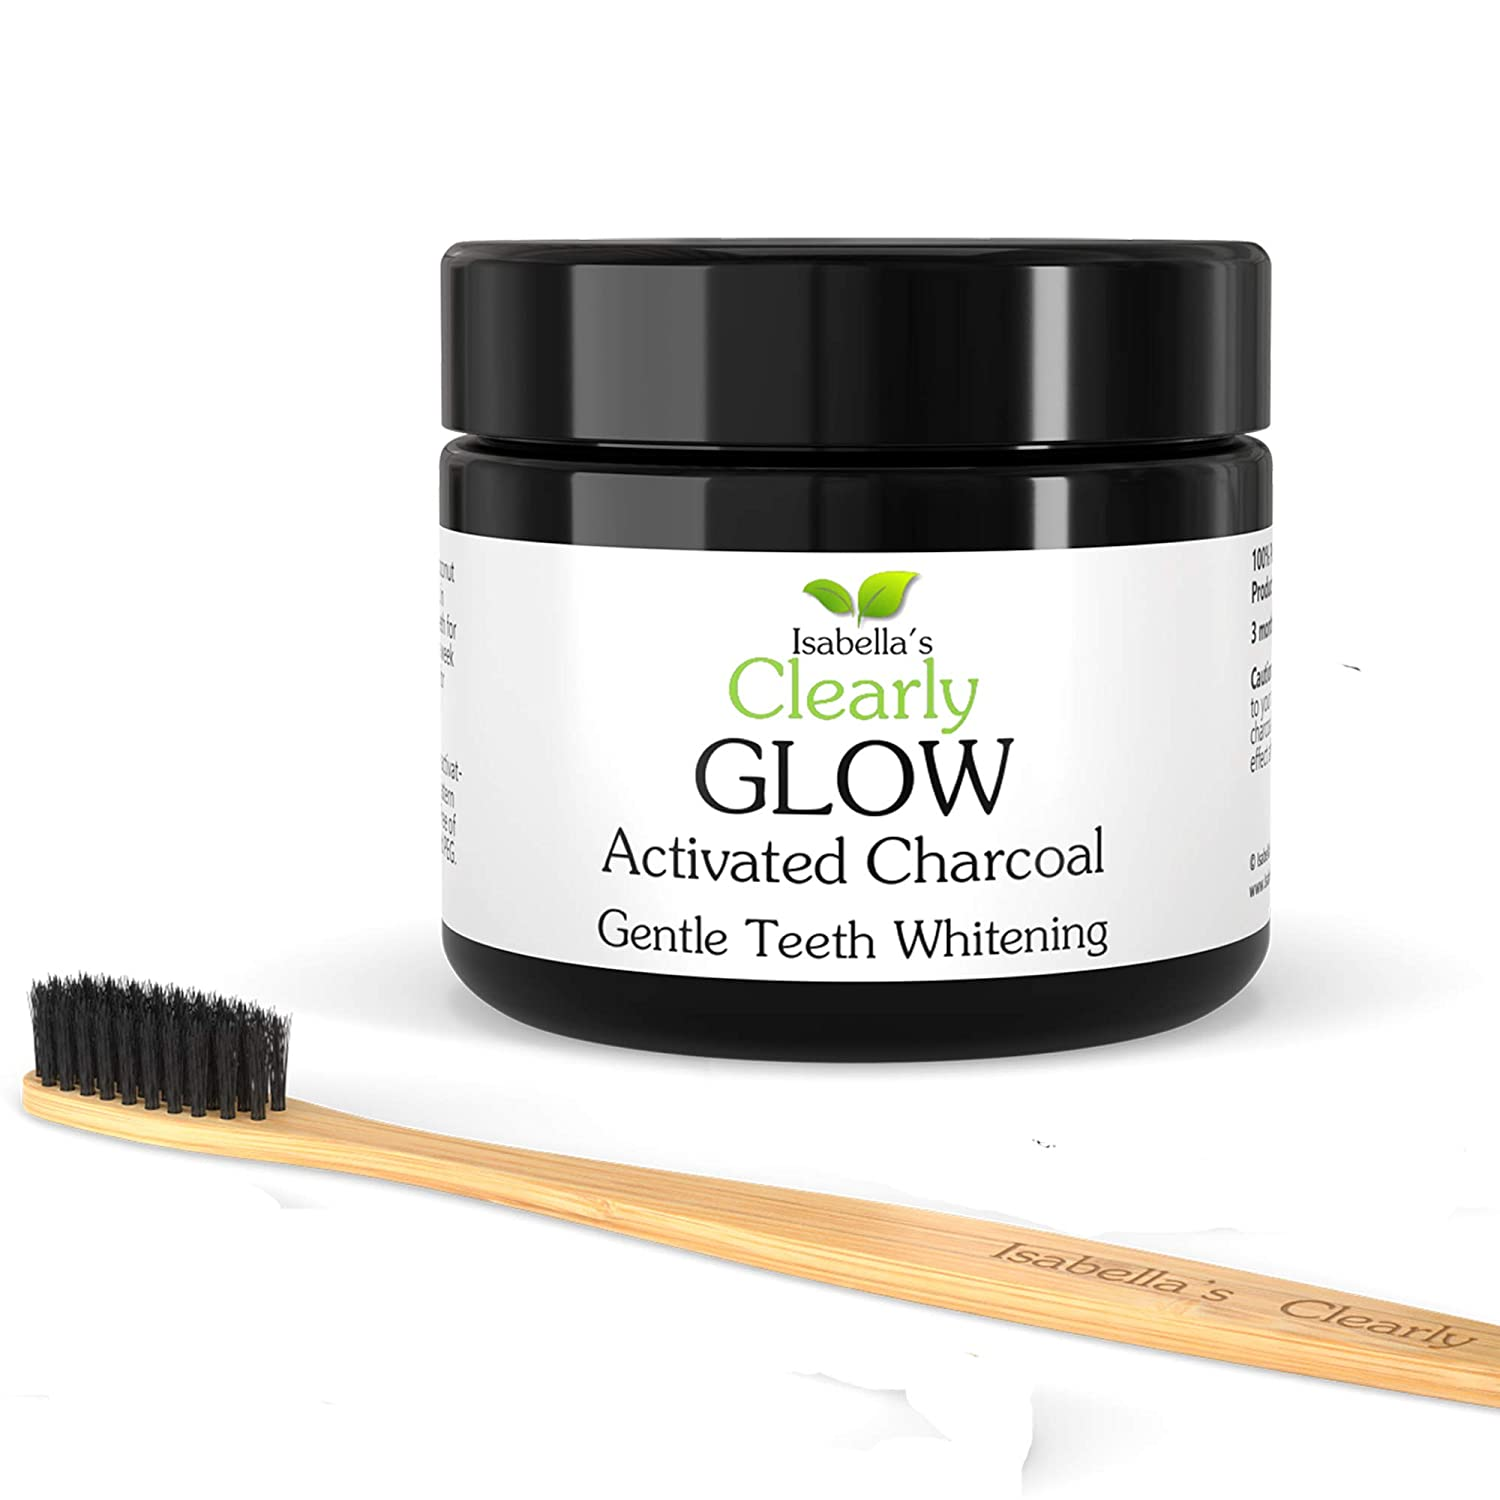 Clearly GLOW Teeth Whitening Activated Charcoal Powder + Soft Bamboo Toothbrush I 100% Pure Food Grade Natural Teeth Whitener I No Strips or Bleach I Made in USA